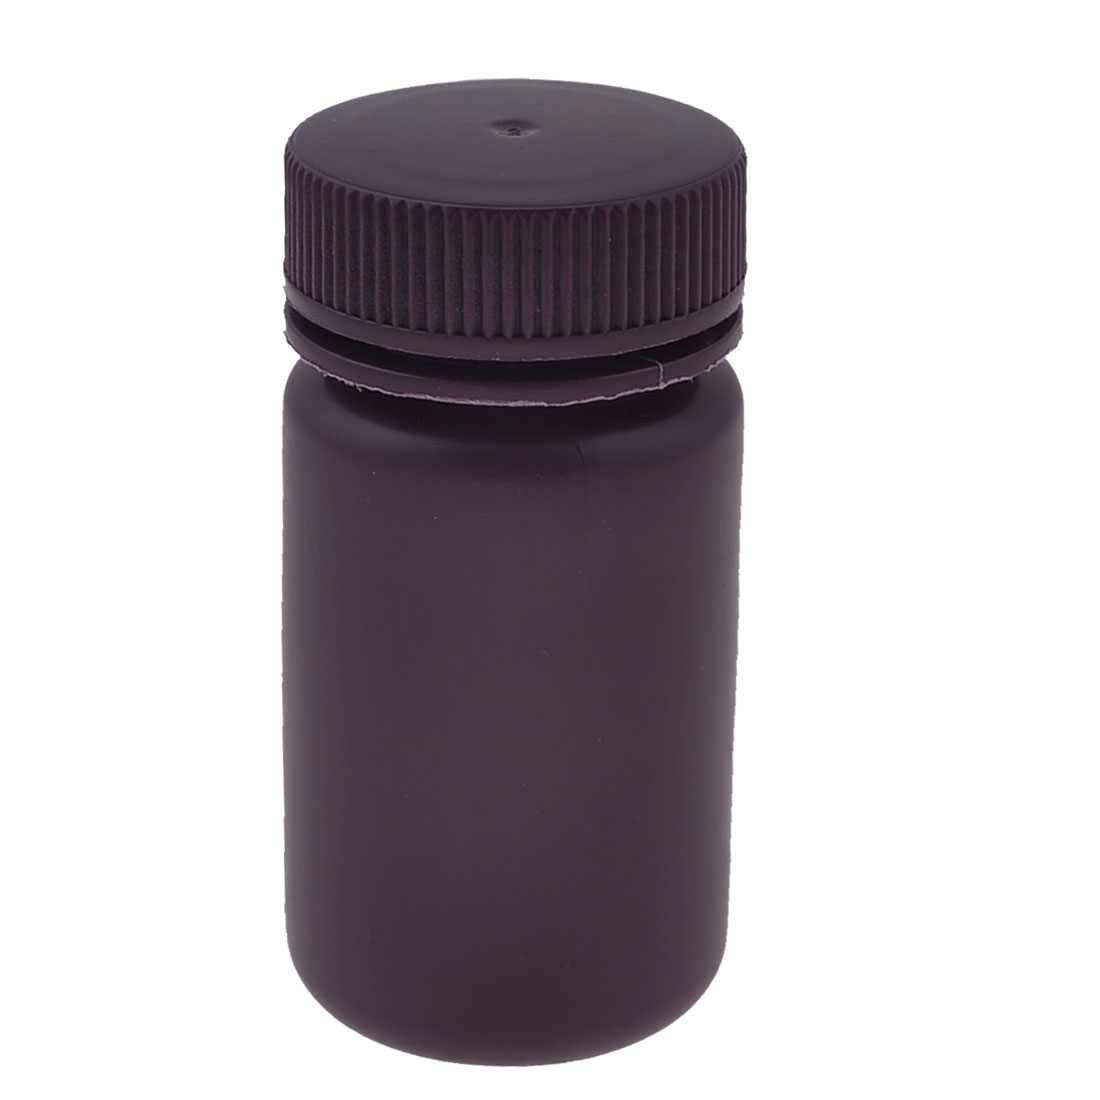 125ml Brown Plastic Cylinder Shaped Chemical Reagent Bottle